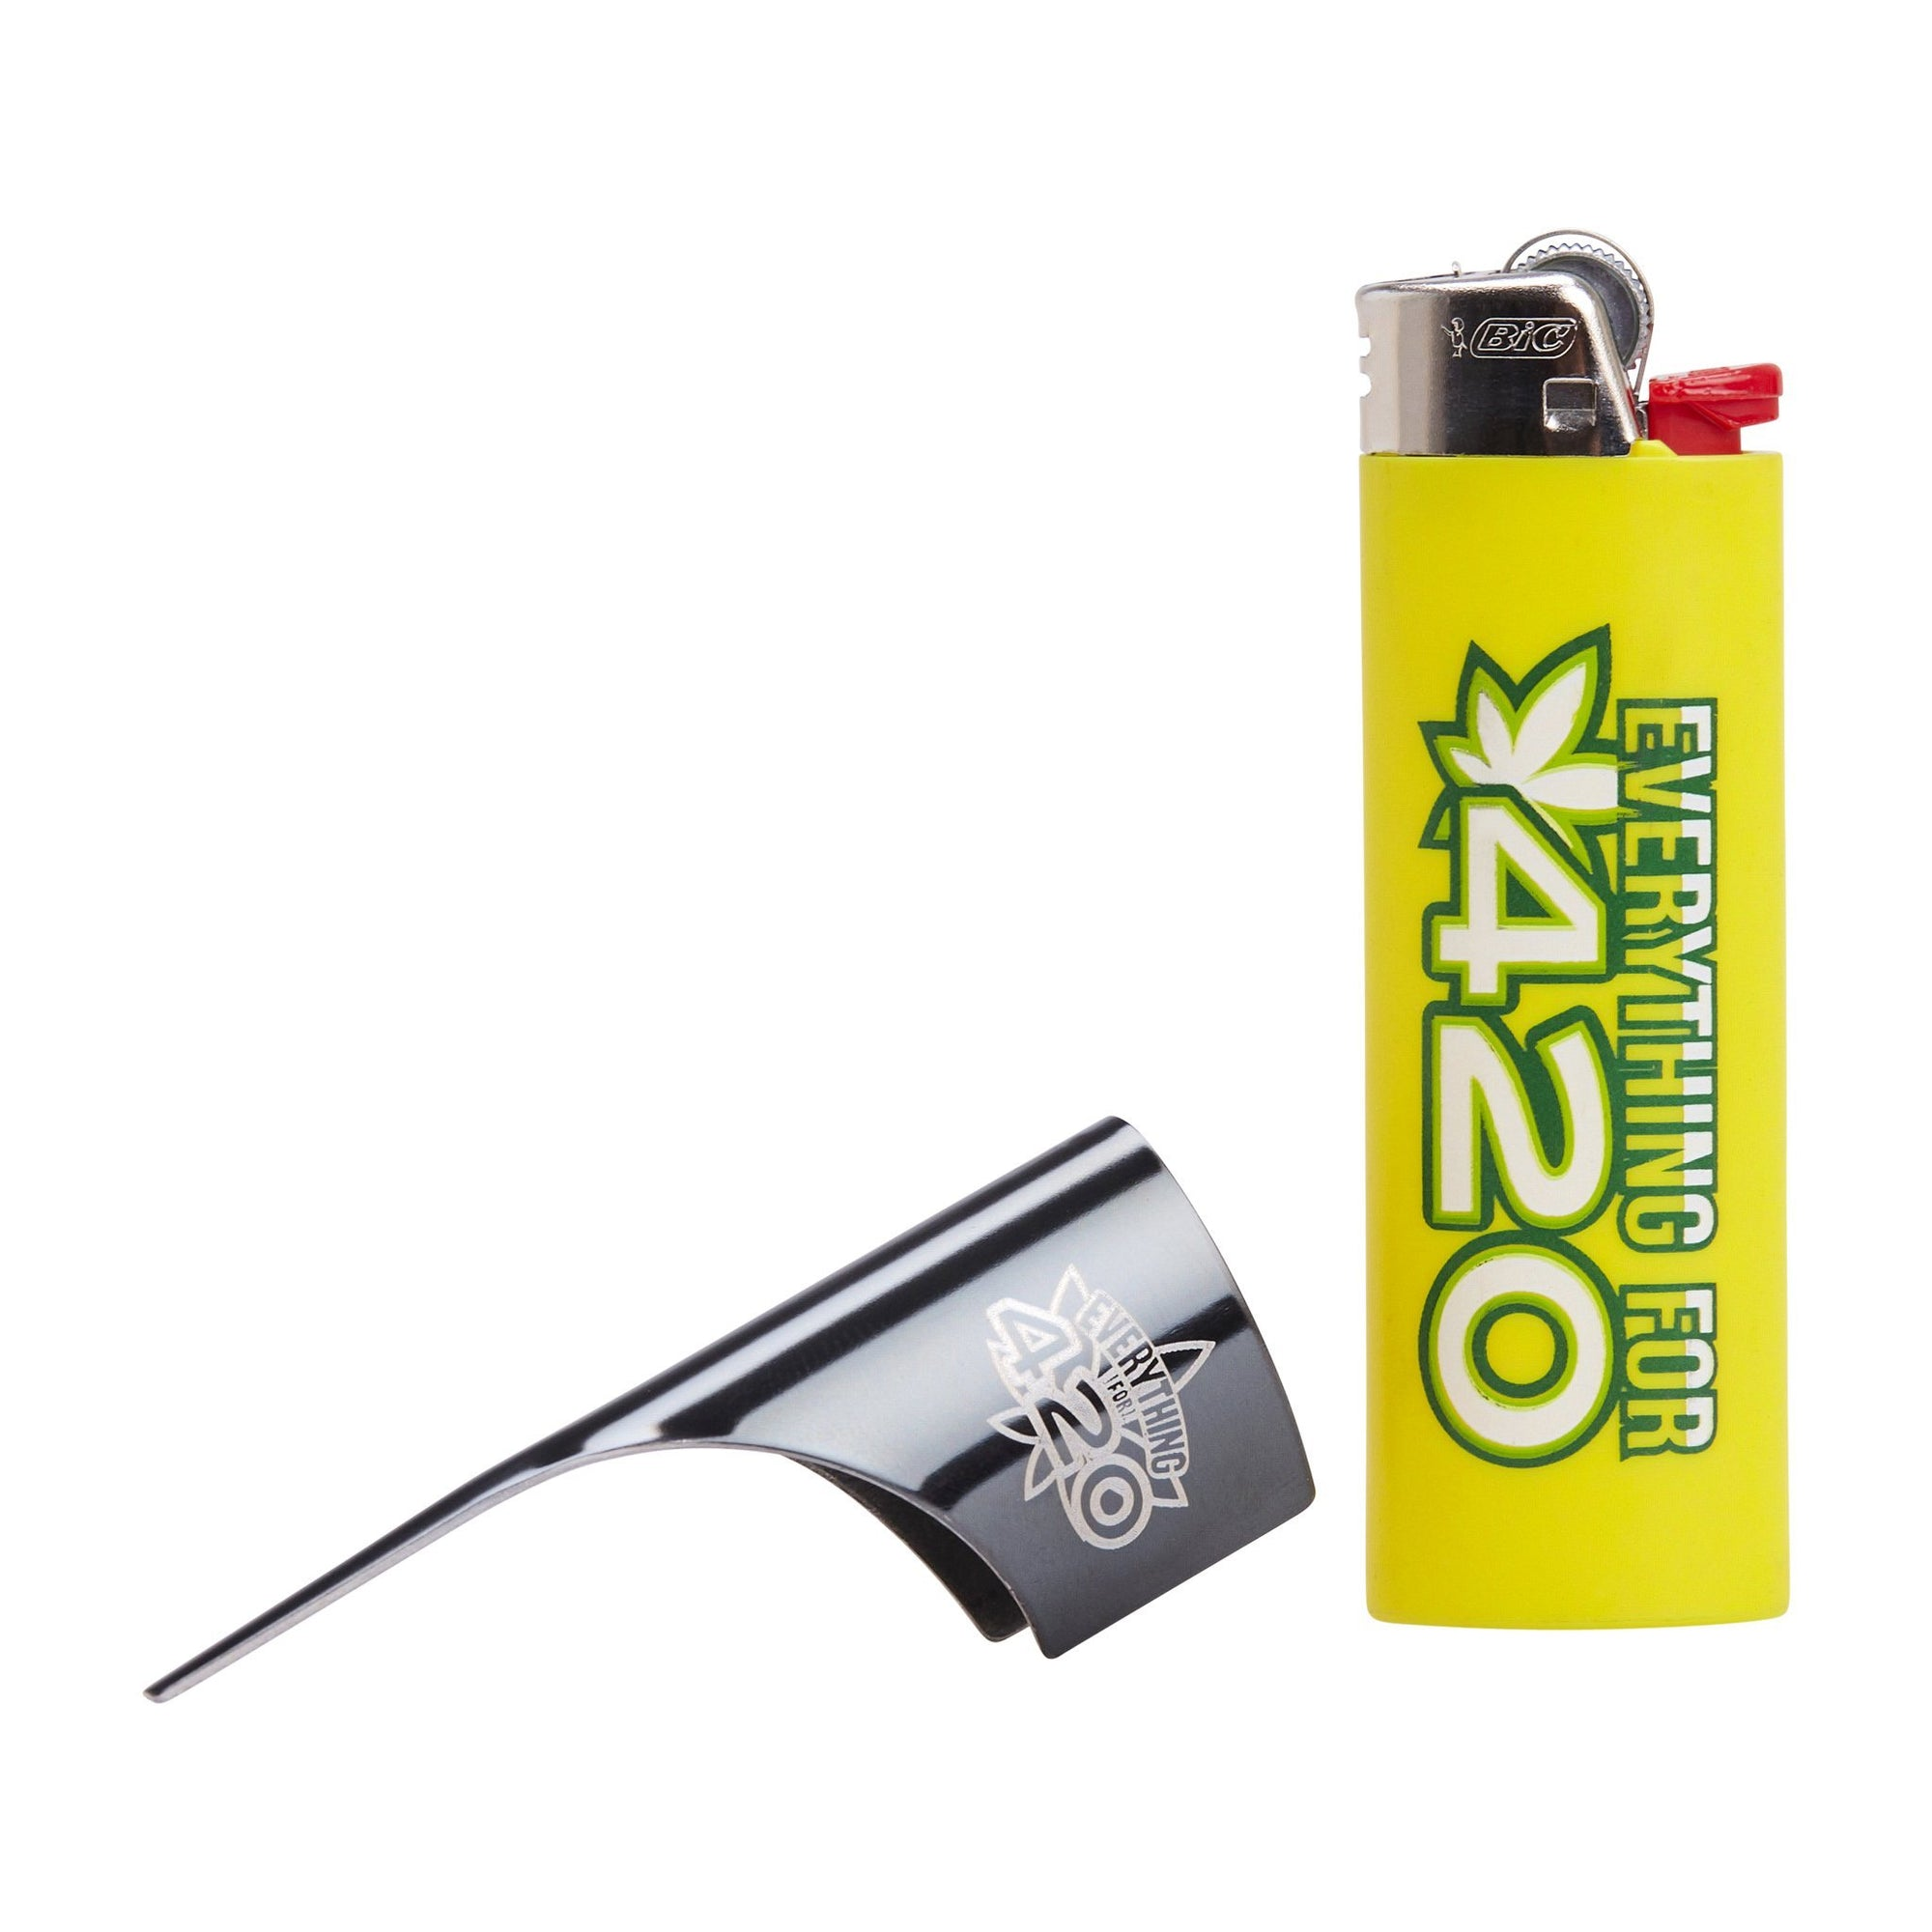 Multipurpose kasher lighter accessory fit most lighters with sleek style and Everything For 420 print